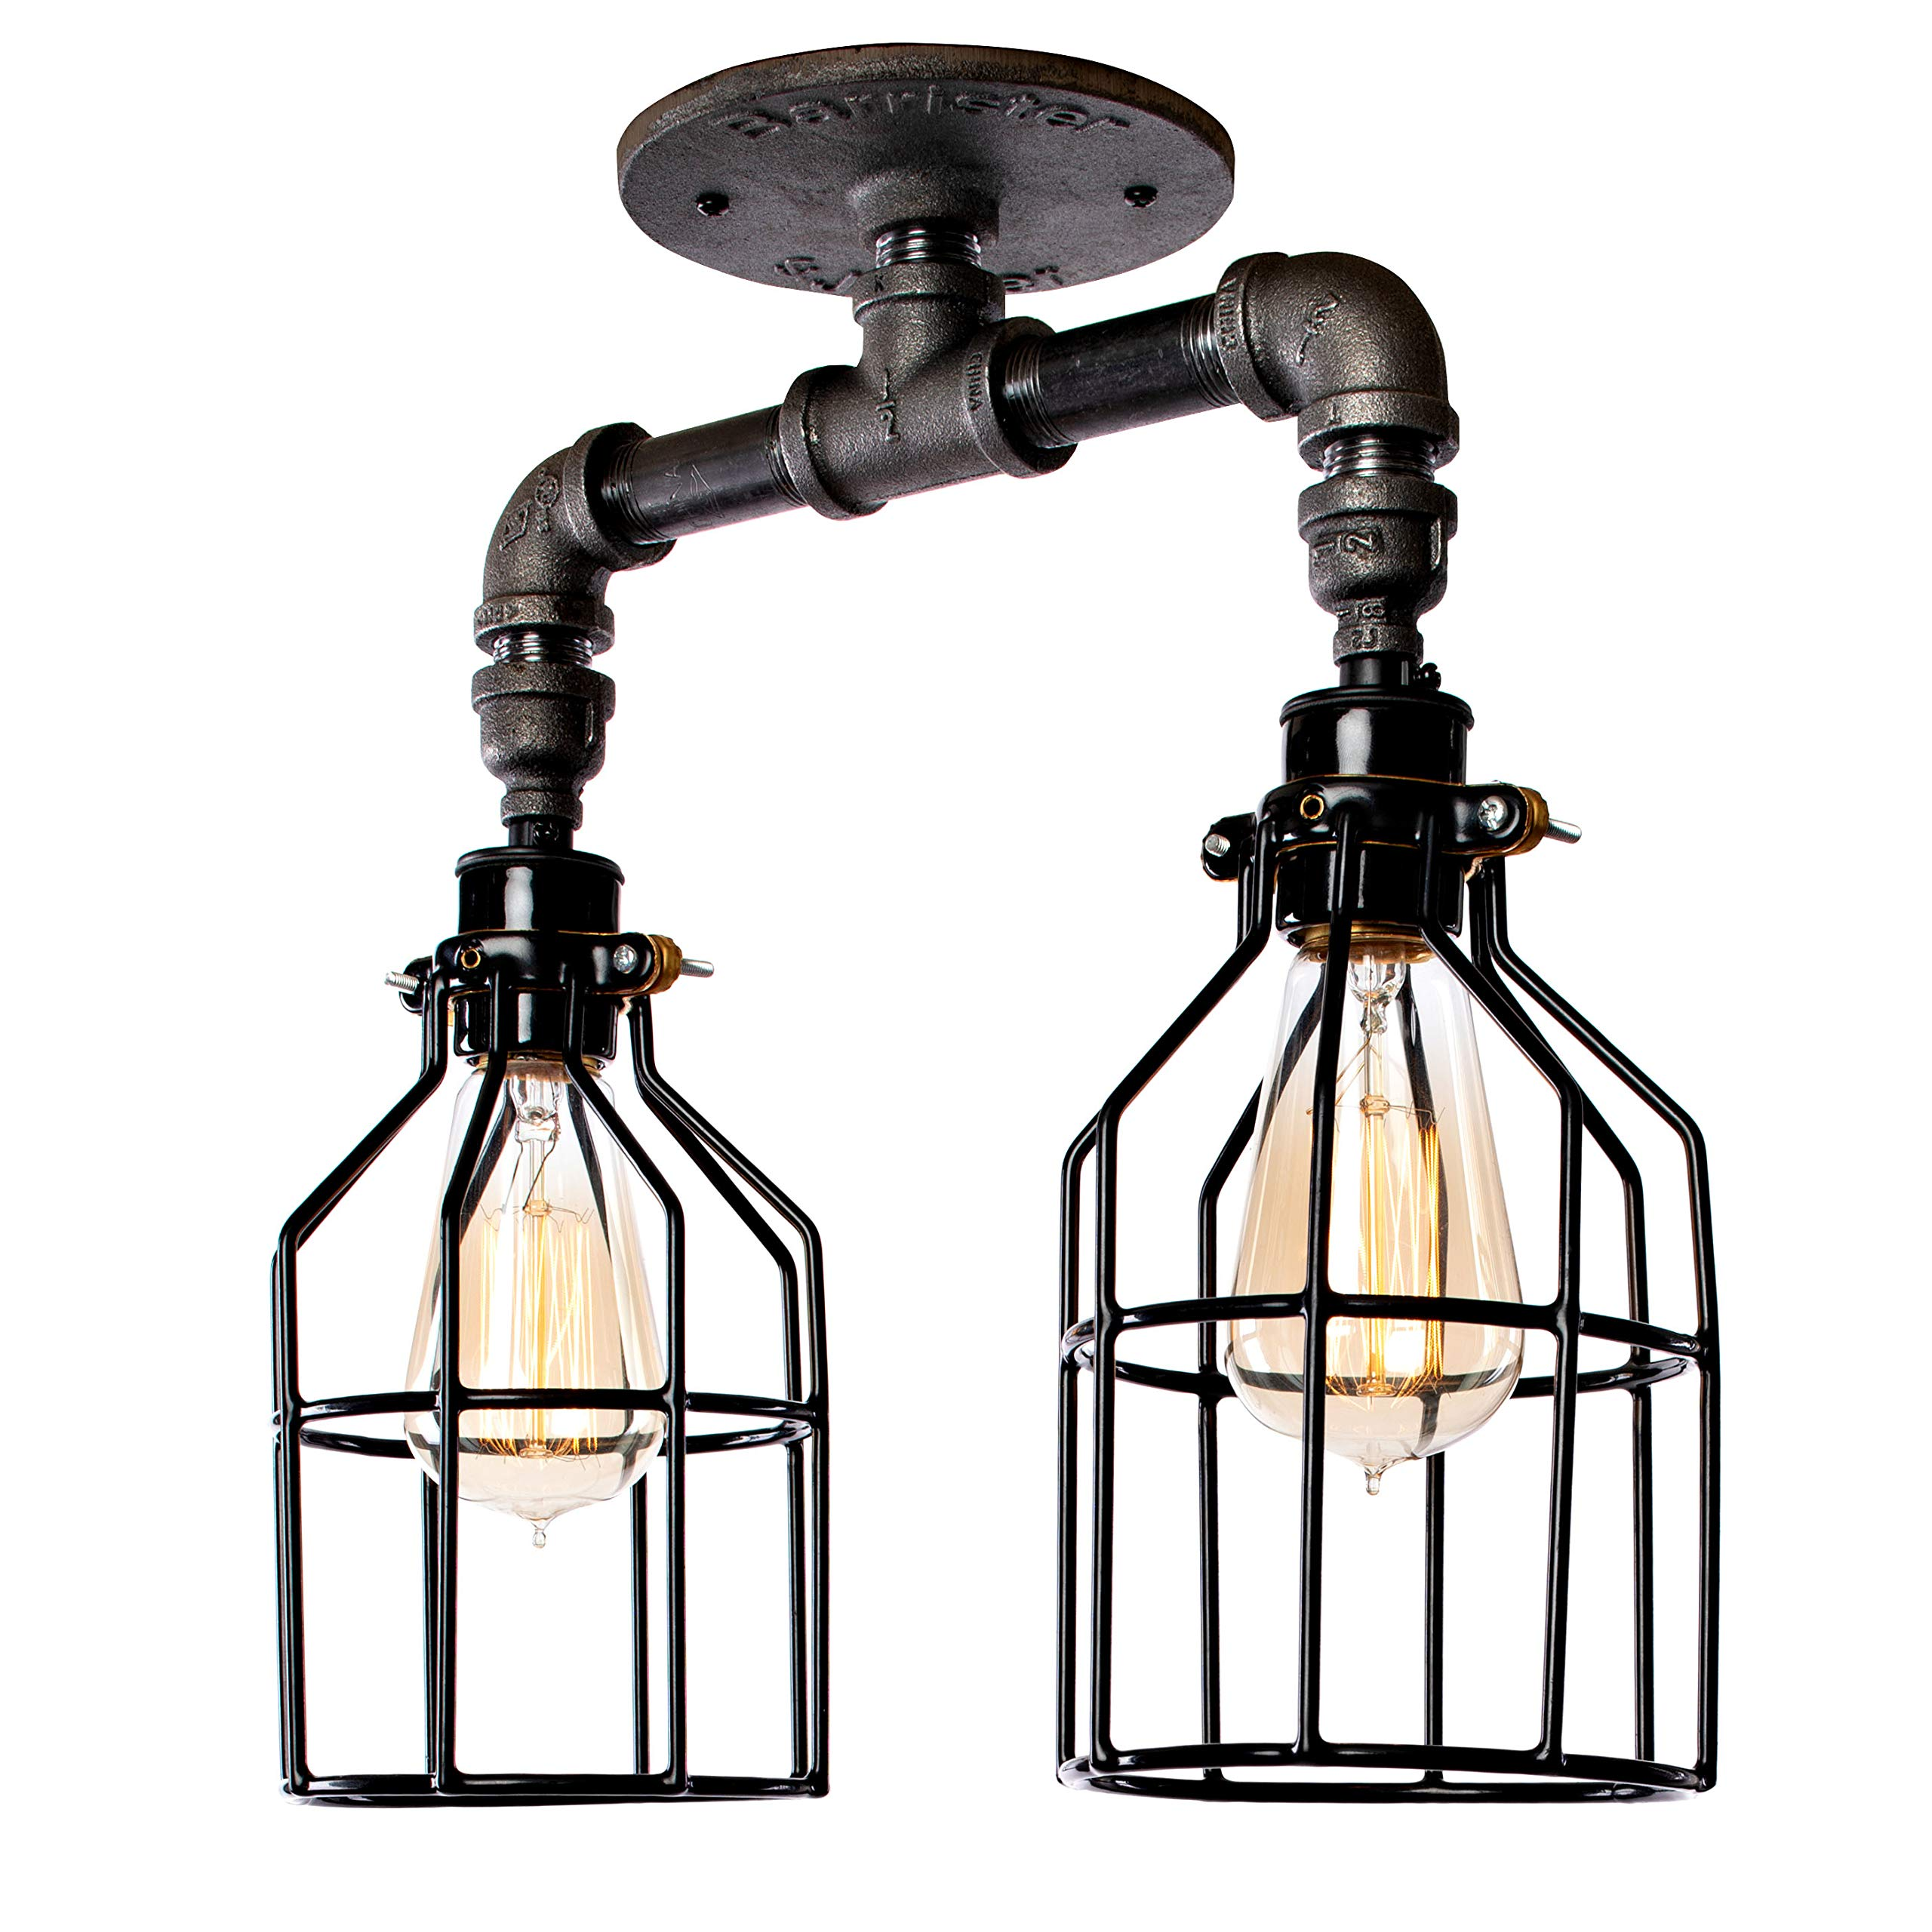 Vintage Industrial Light Fixture - Flush Mount, Hanging, Canopy Lighting with Edison Cages and Modern Pipes - Great in Kitchen, Bar, Island, Dining Room, and Foyer - Black with Two Lights